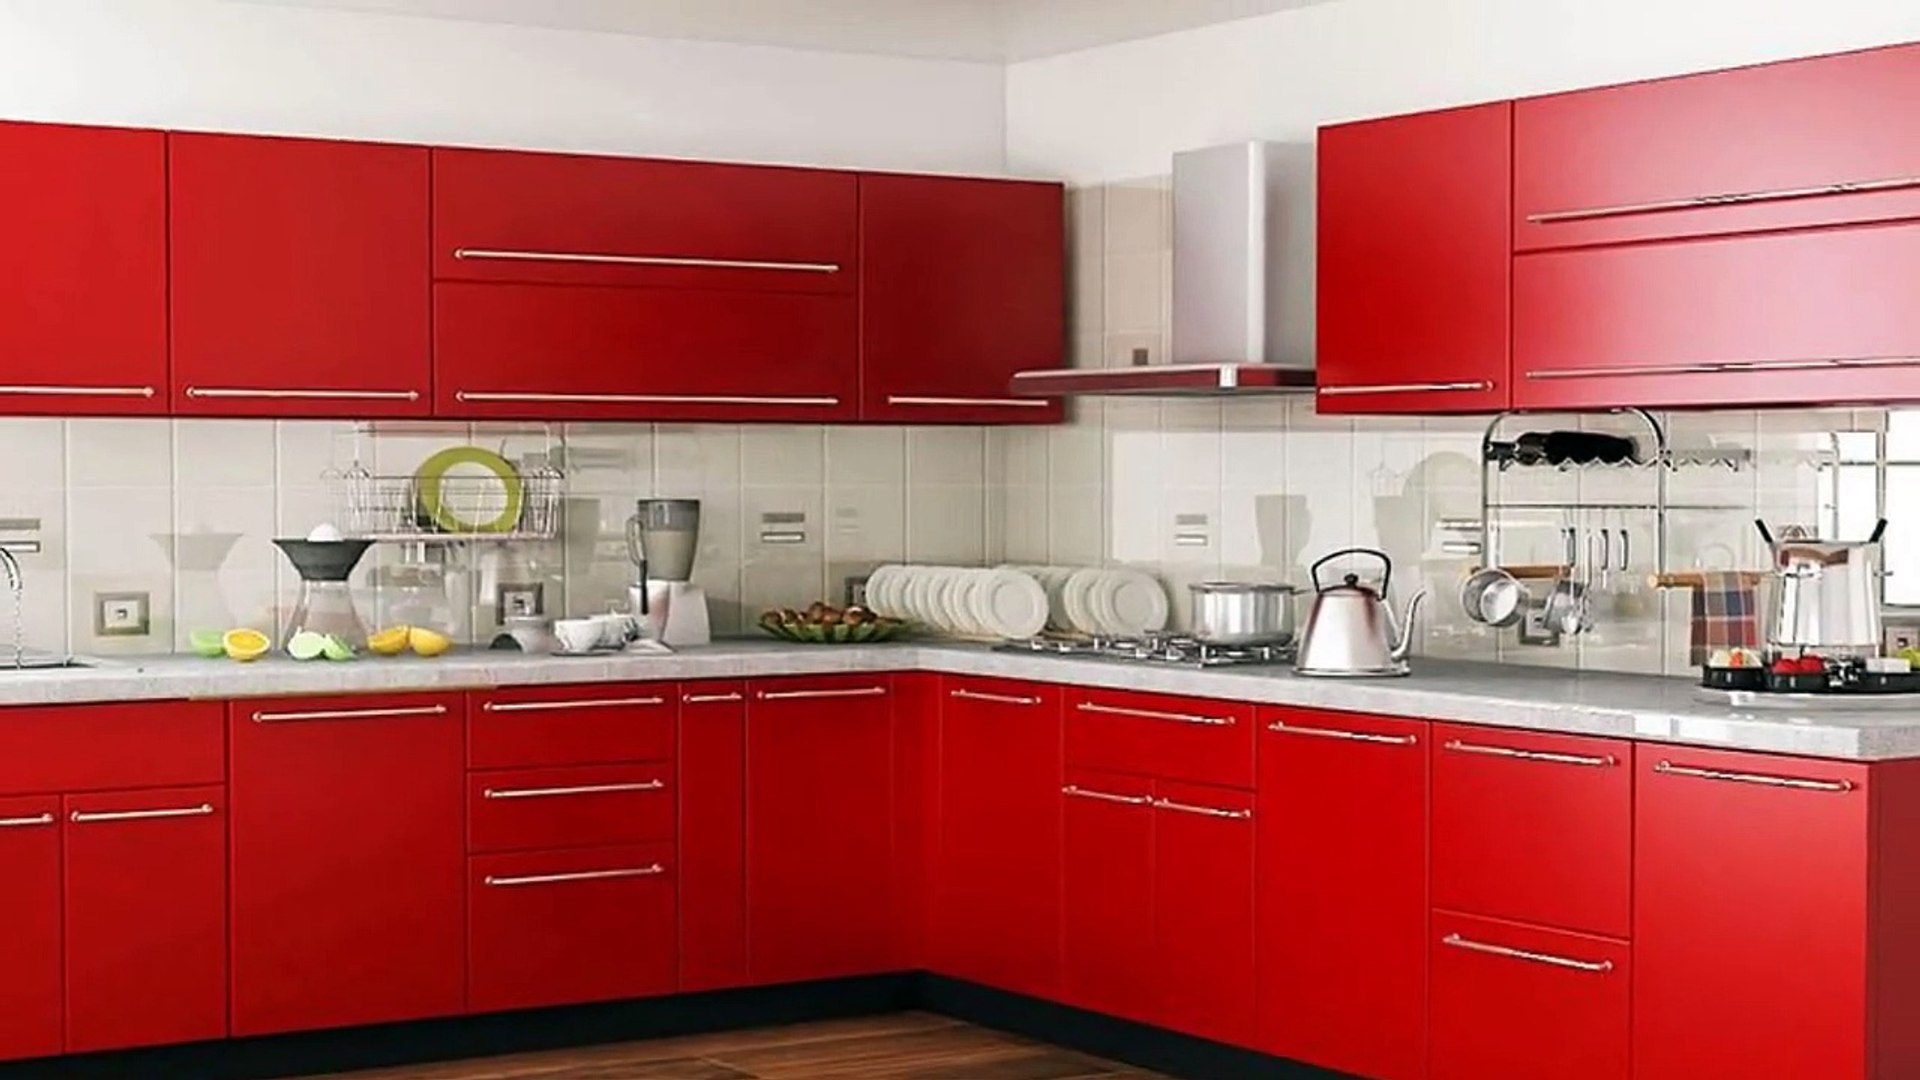 Modular Kitchen Design For Very Small Kitchen Video Dailymotion